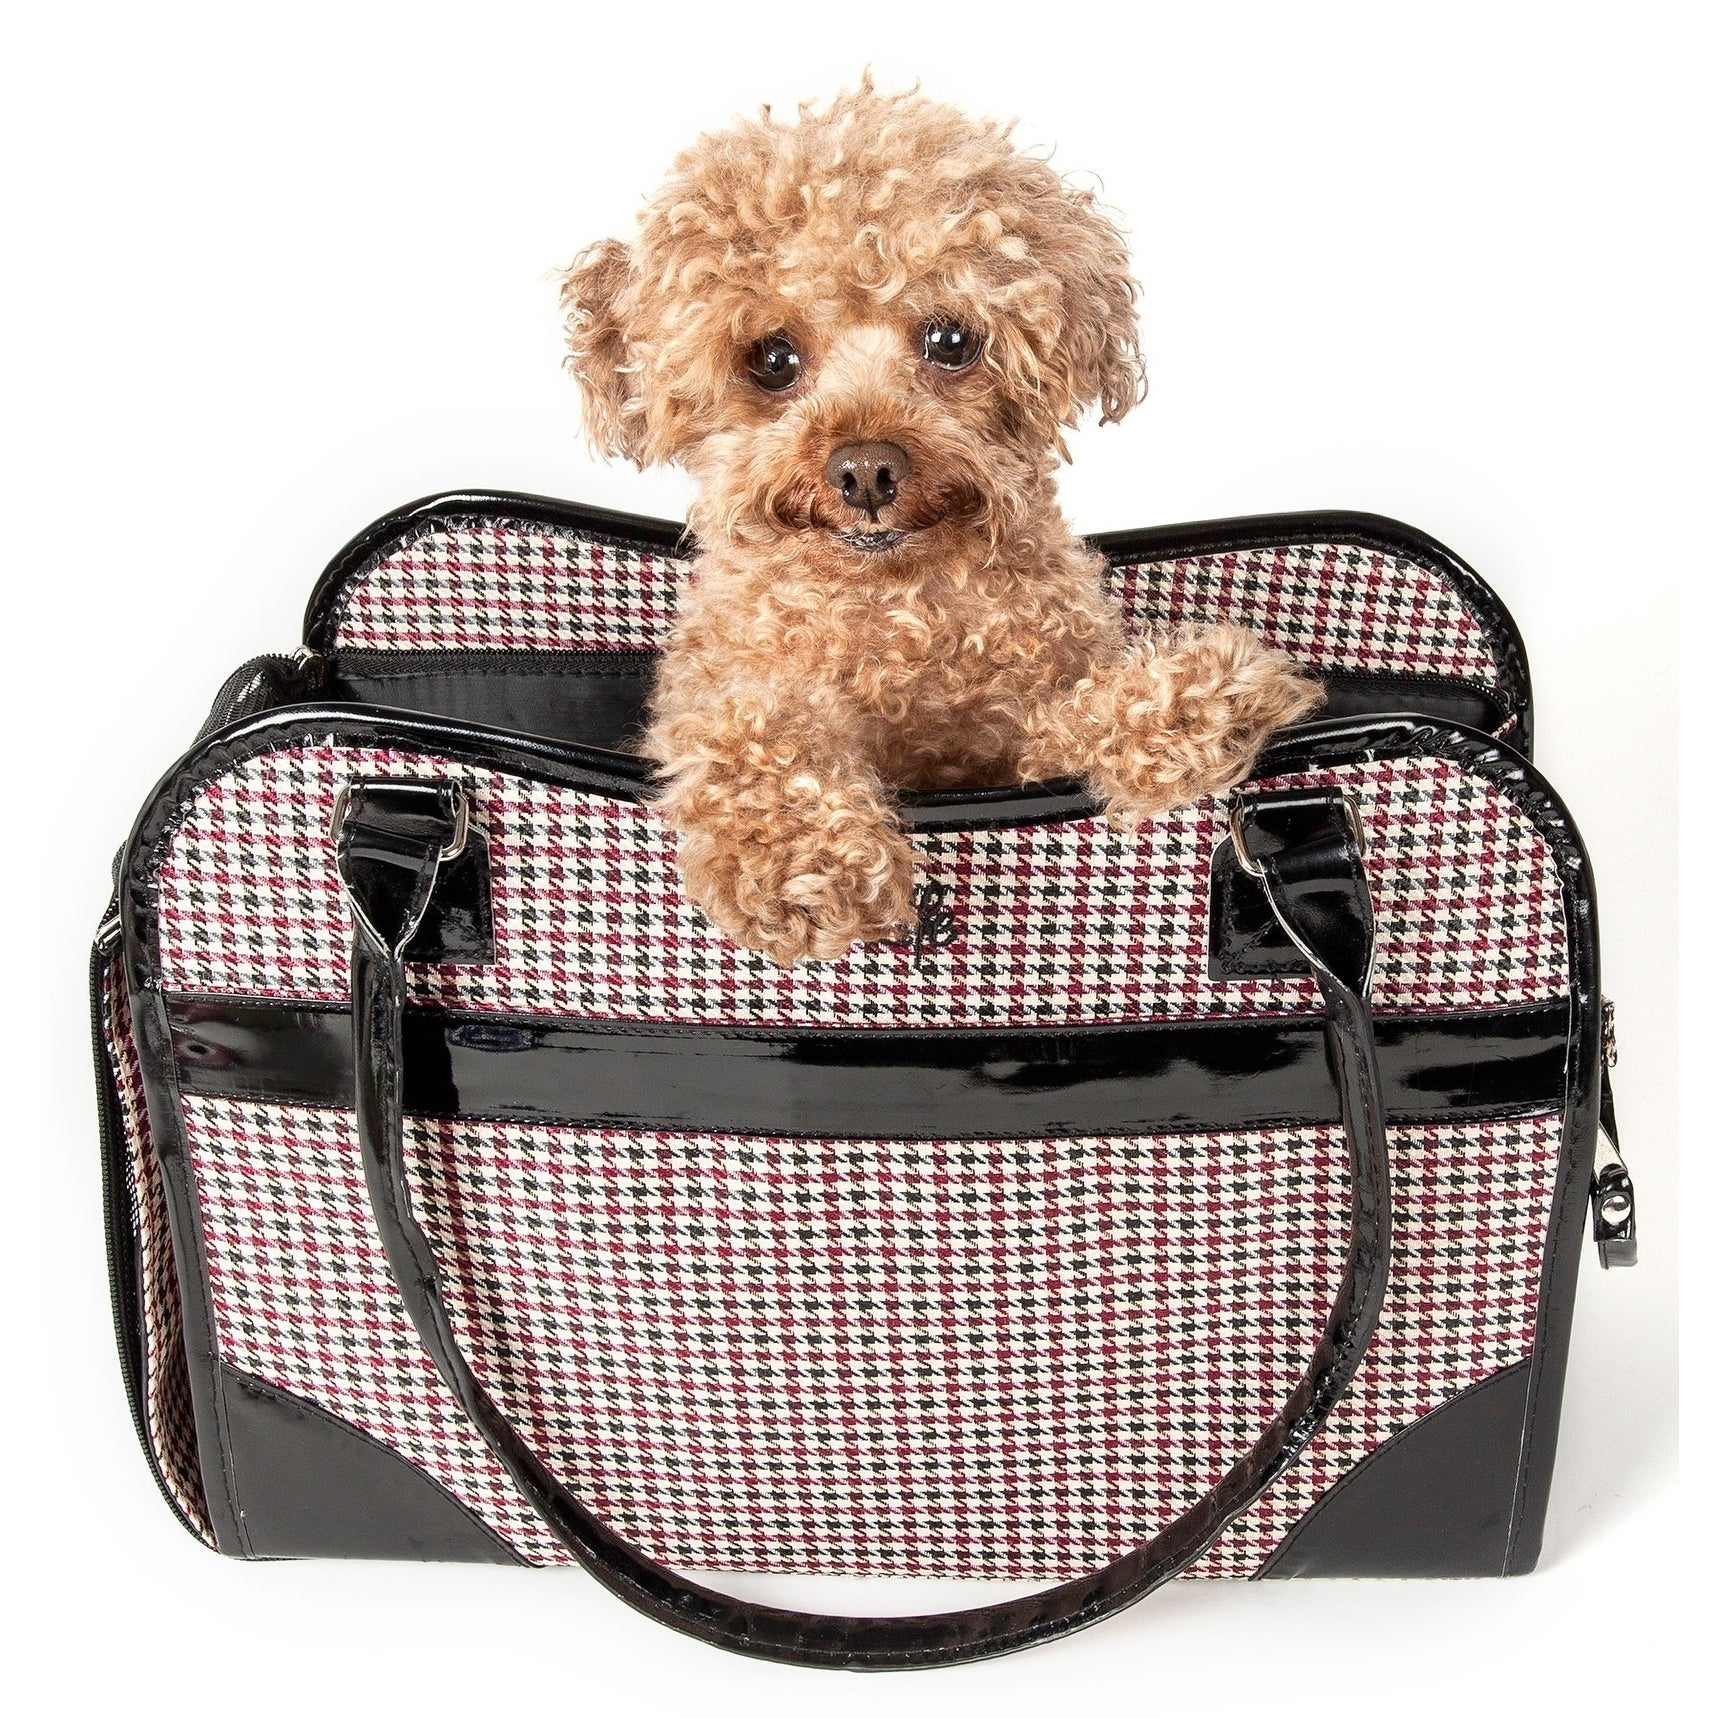 Petlife Houndstooth Exquisite Handbag Fashion Pet Carrier...